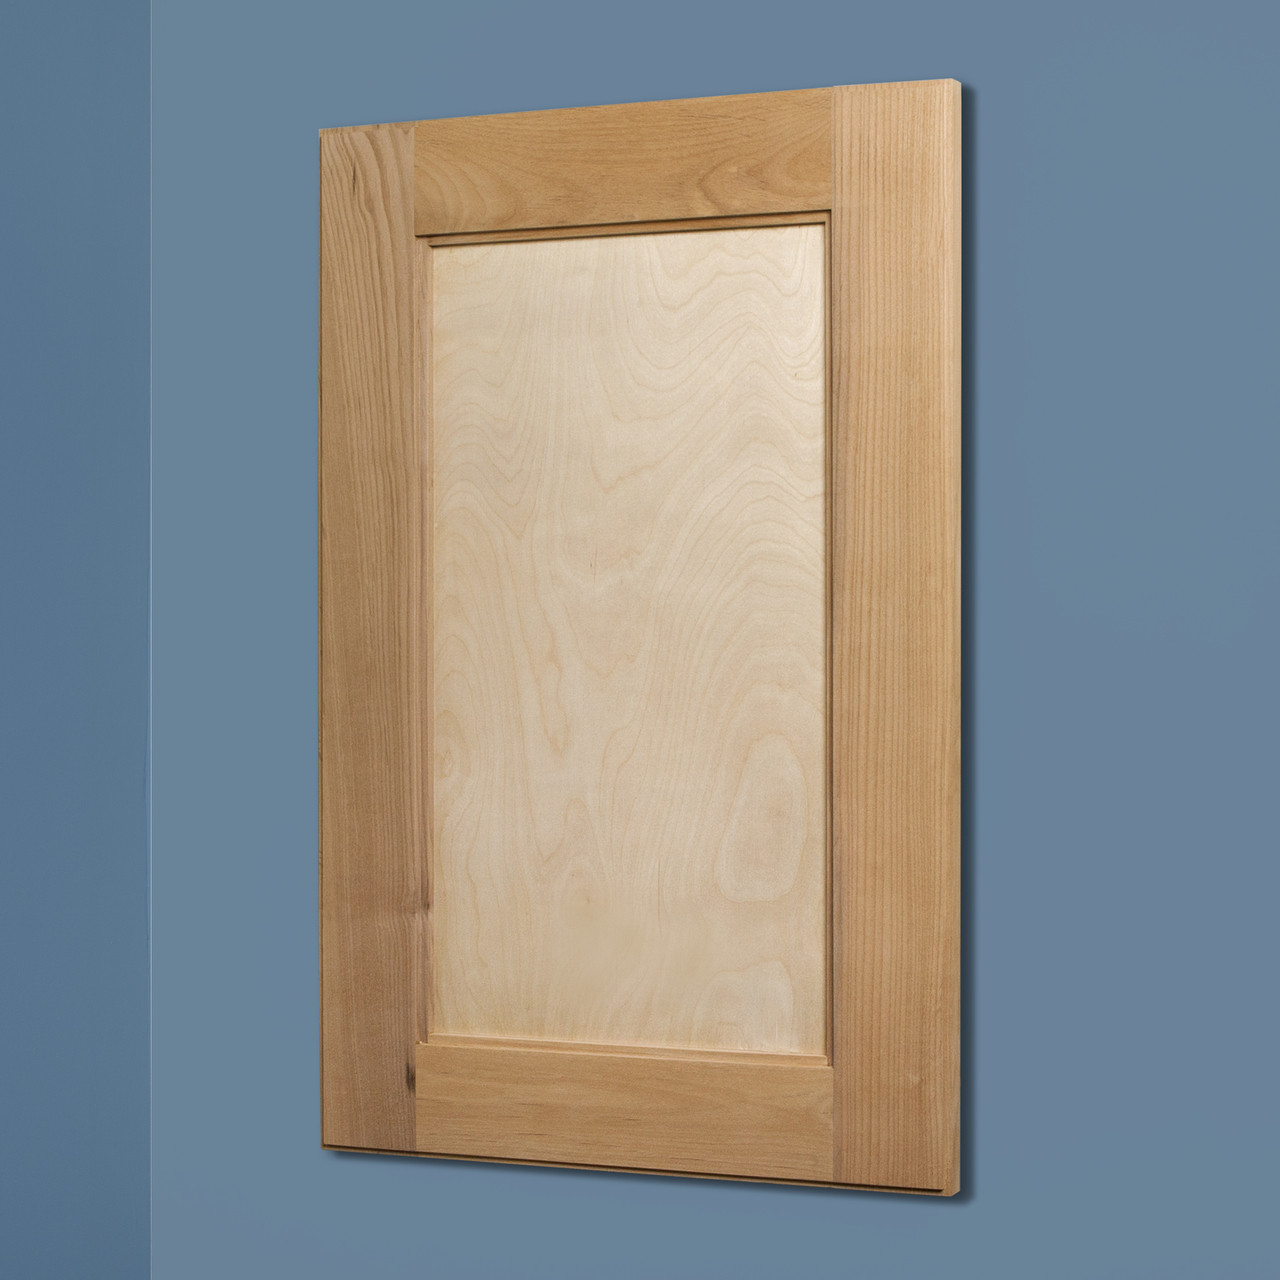 Unfinished Shaker Style Recessed Medicine Cabinet 14x24 Recessed In Wall Medicine Cabinets With No Mirrors